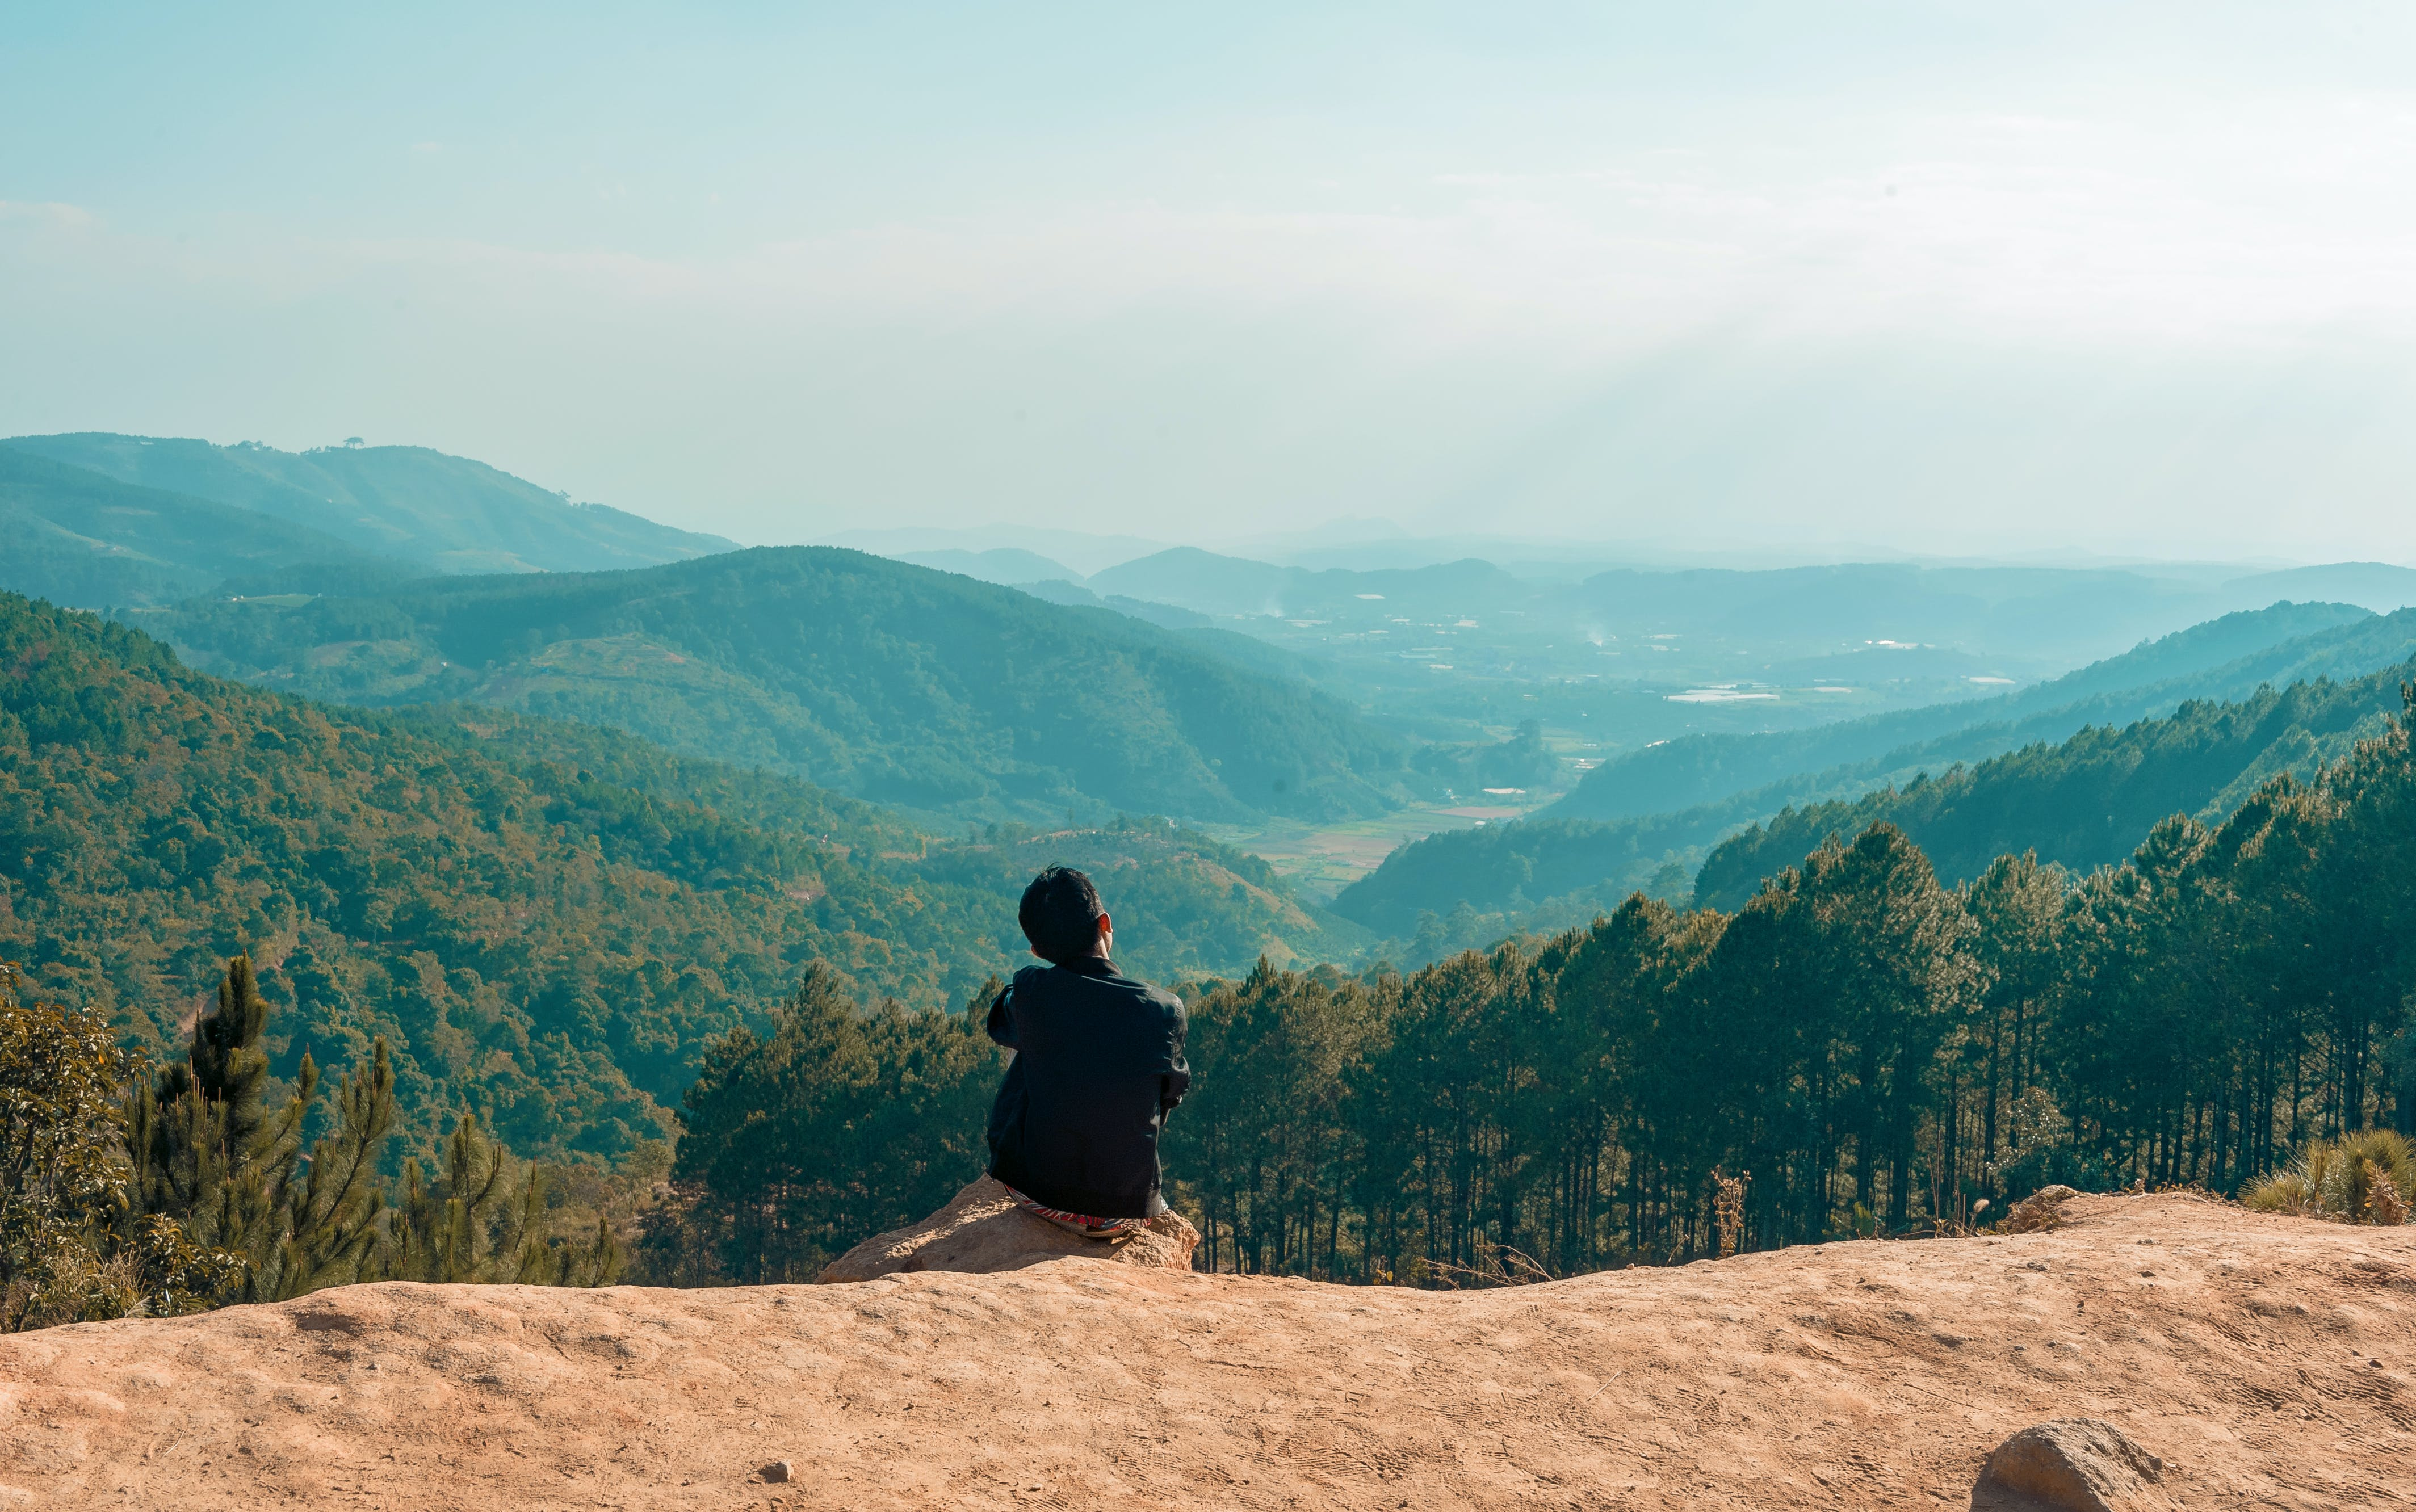 Man Sitting on Cliff Overlooking Mountain